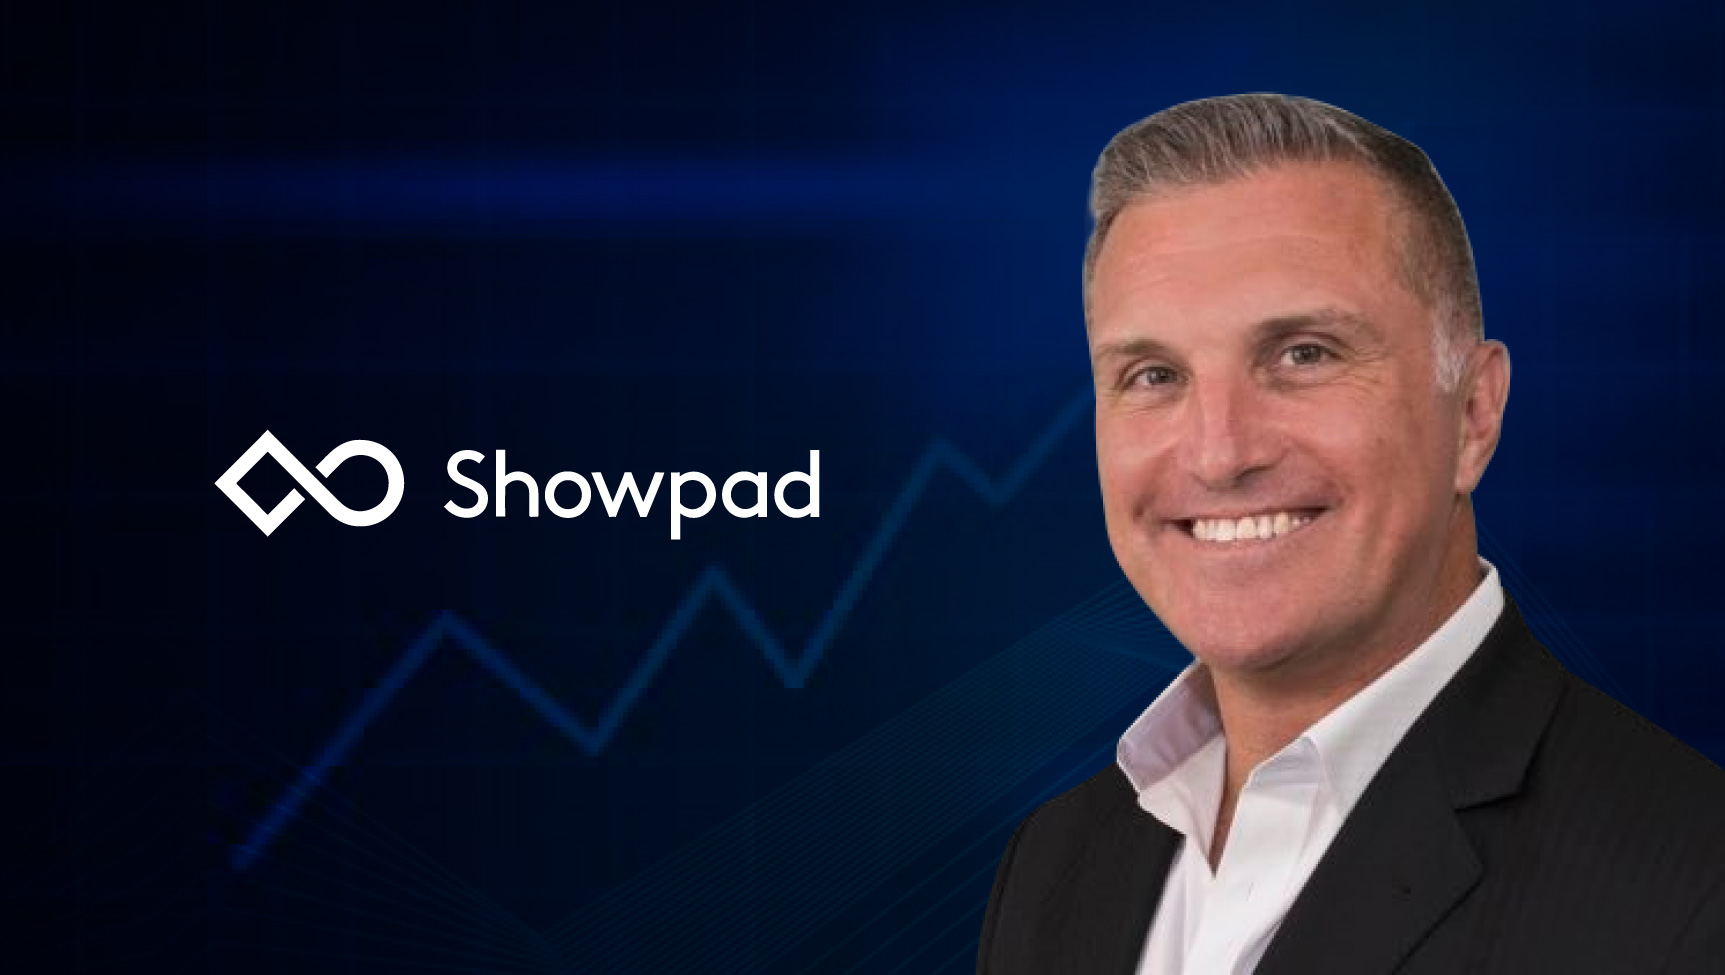 SalesTech Interview with Don Matejko, Chief Revenue Officer at Showpad